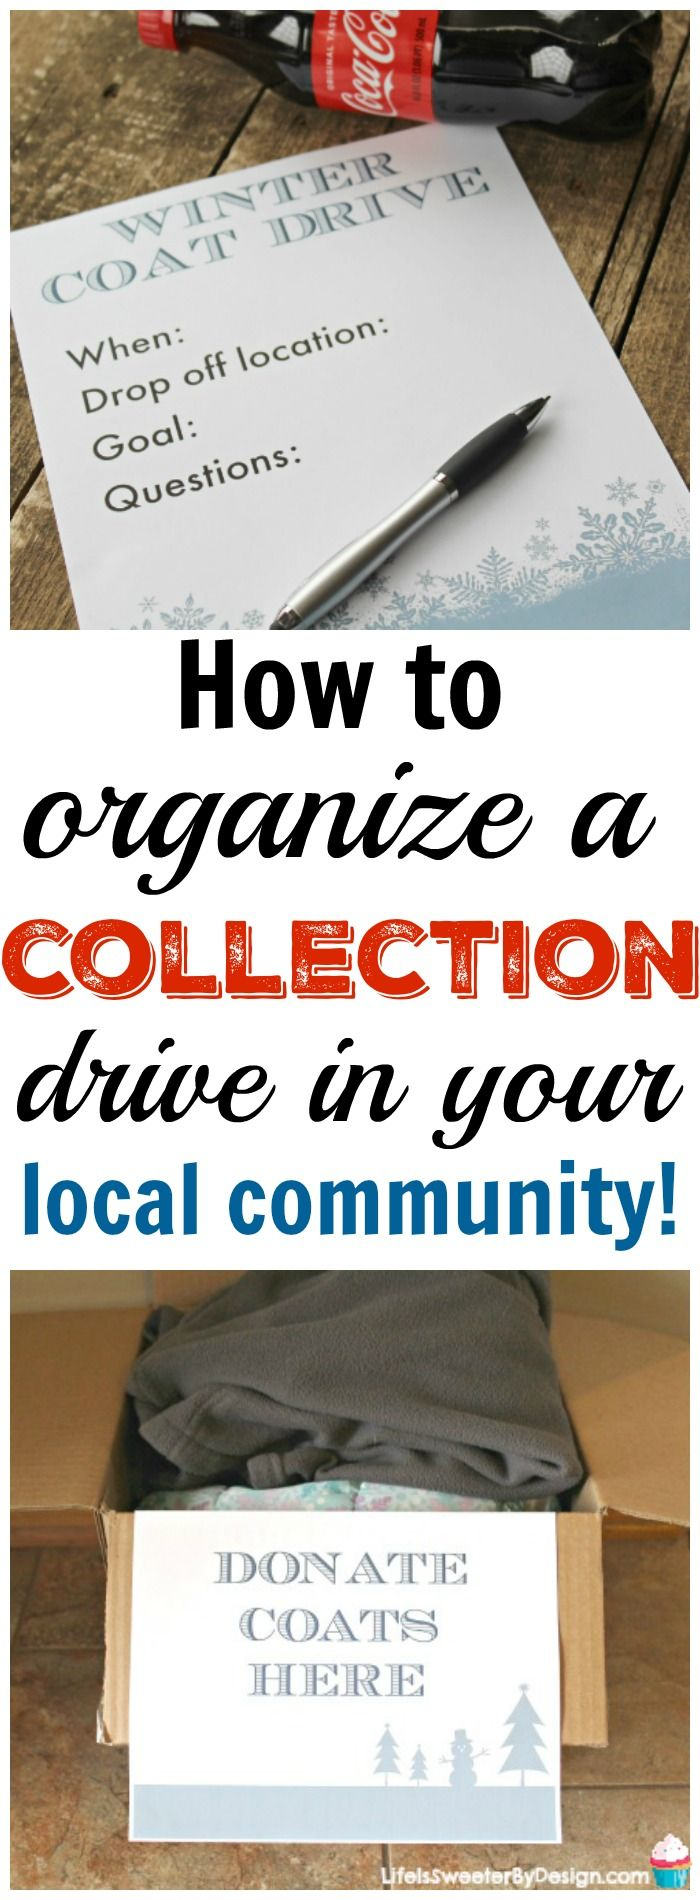 Description of workrite willow monitor arm willow is specifically - How To Organize A Collection Drive In Your Local Community These Tips Will Help You Support Local Charities And Give Back To Others